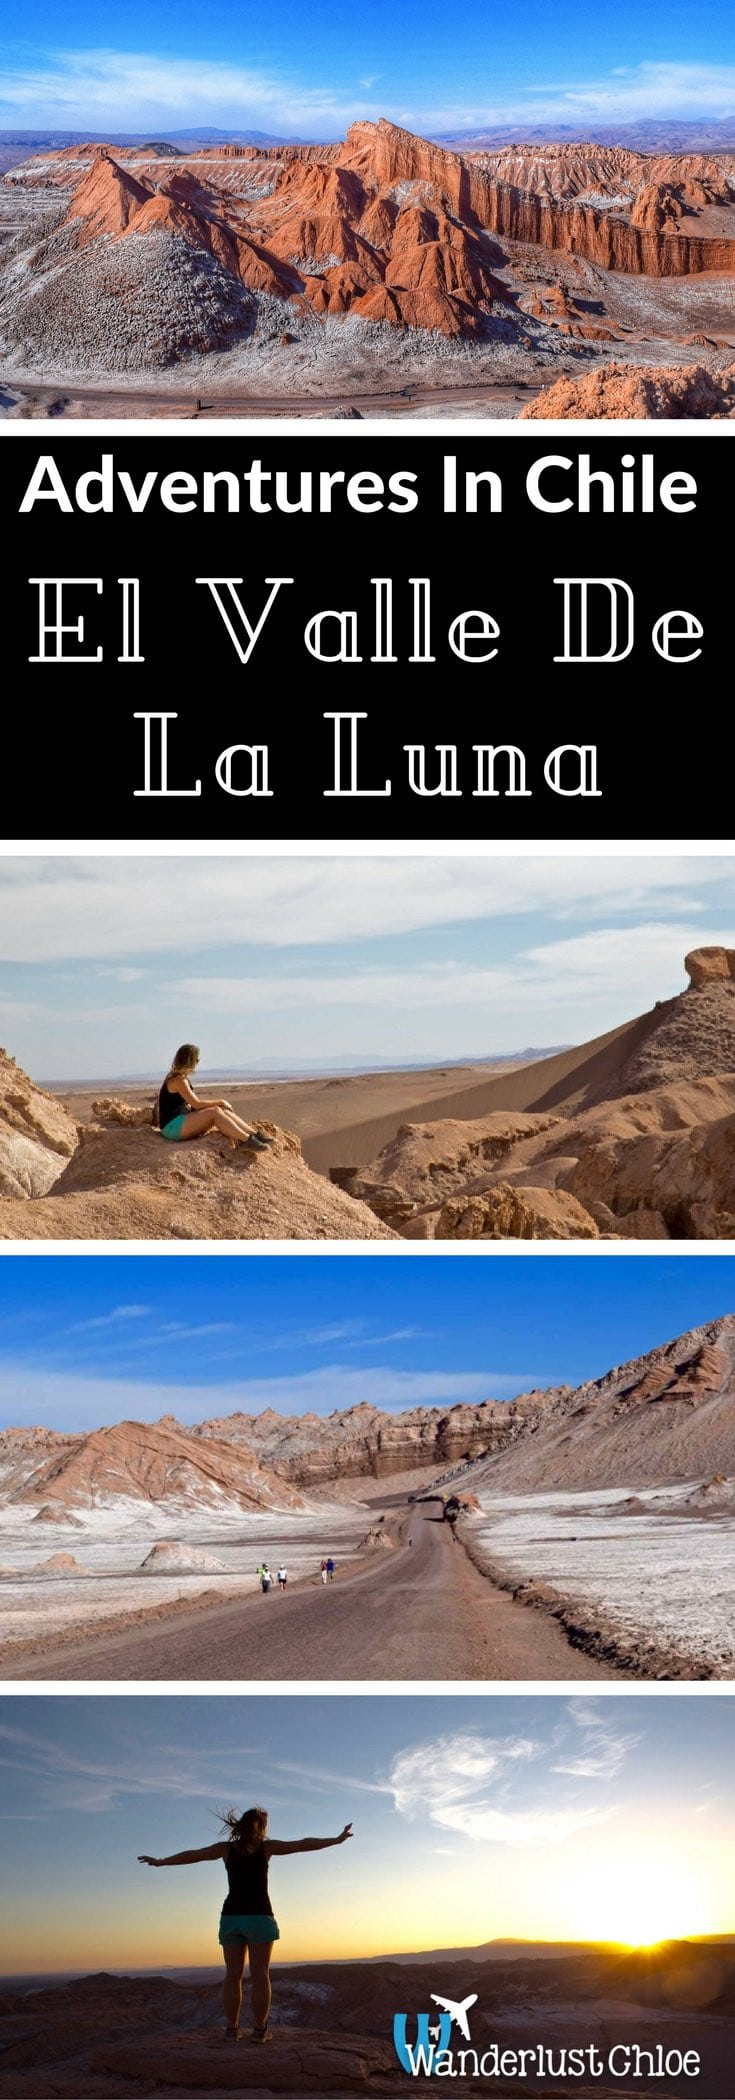 Adventures In El Valle De La Luna, Chile